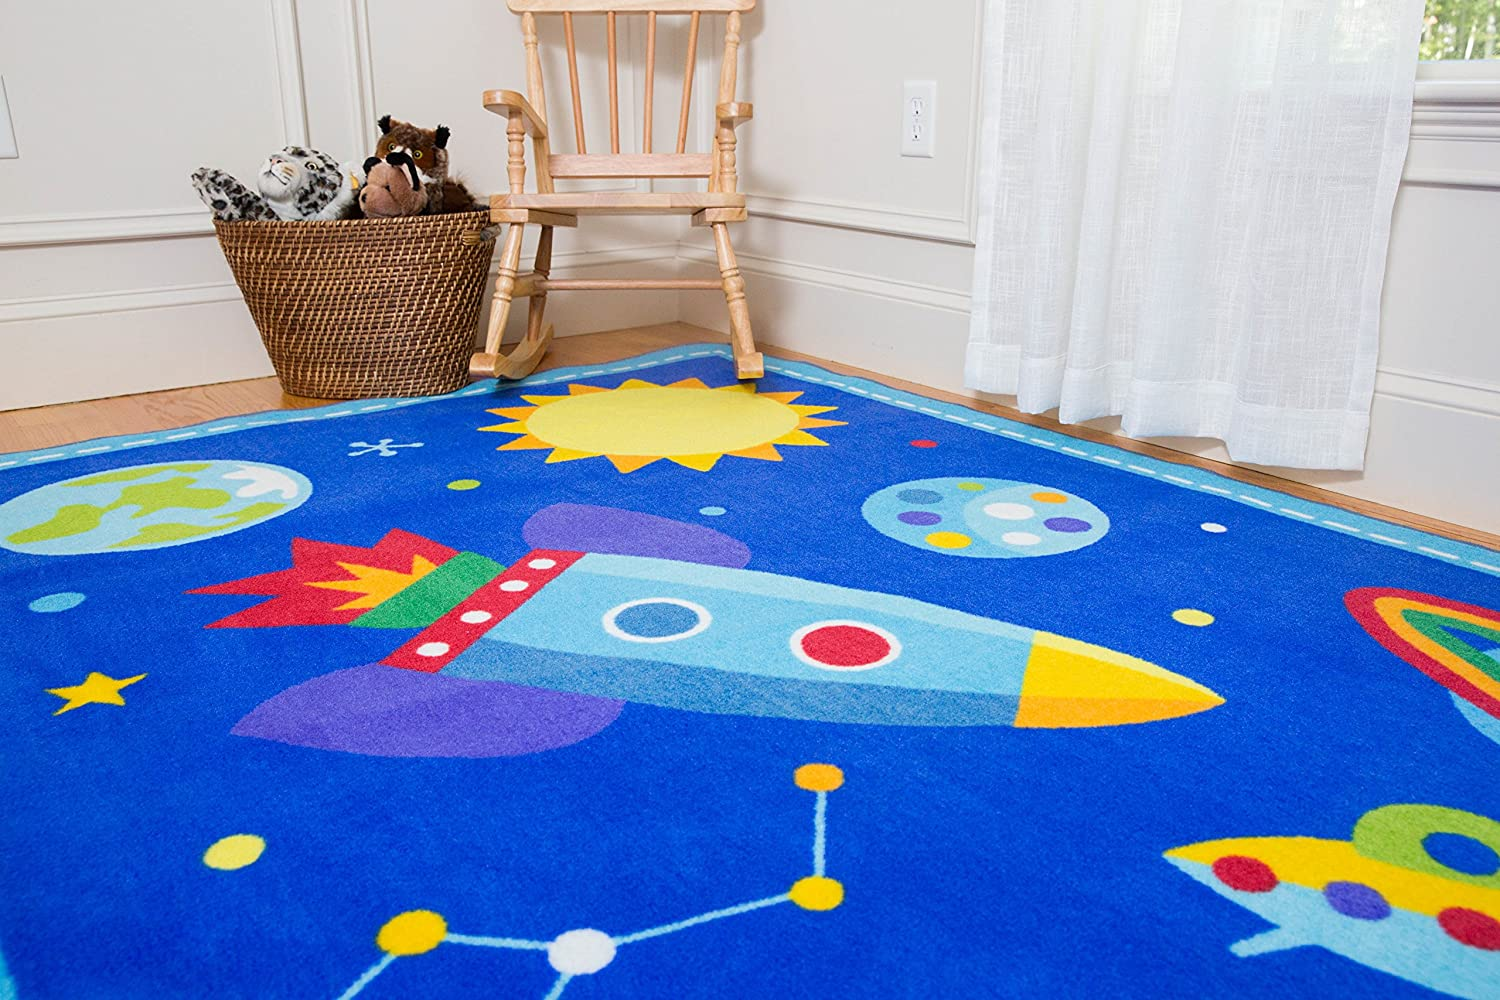 Vibrant Colors Wildkin 39x58 Inch Rug Olive Kids Design Coordinates with Other Room D/écor Horses 600696 and Skid-Proof Backing Features Durable Design